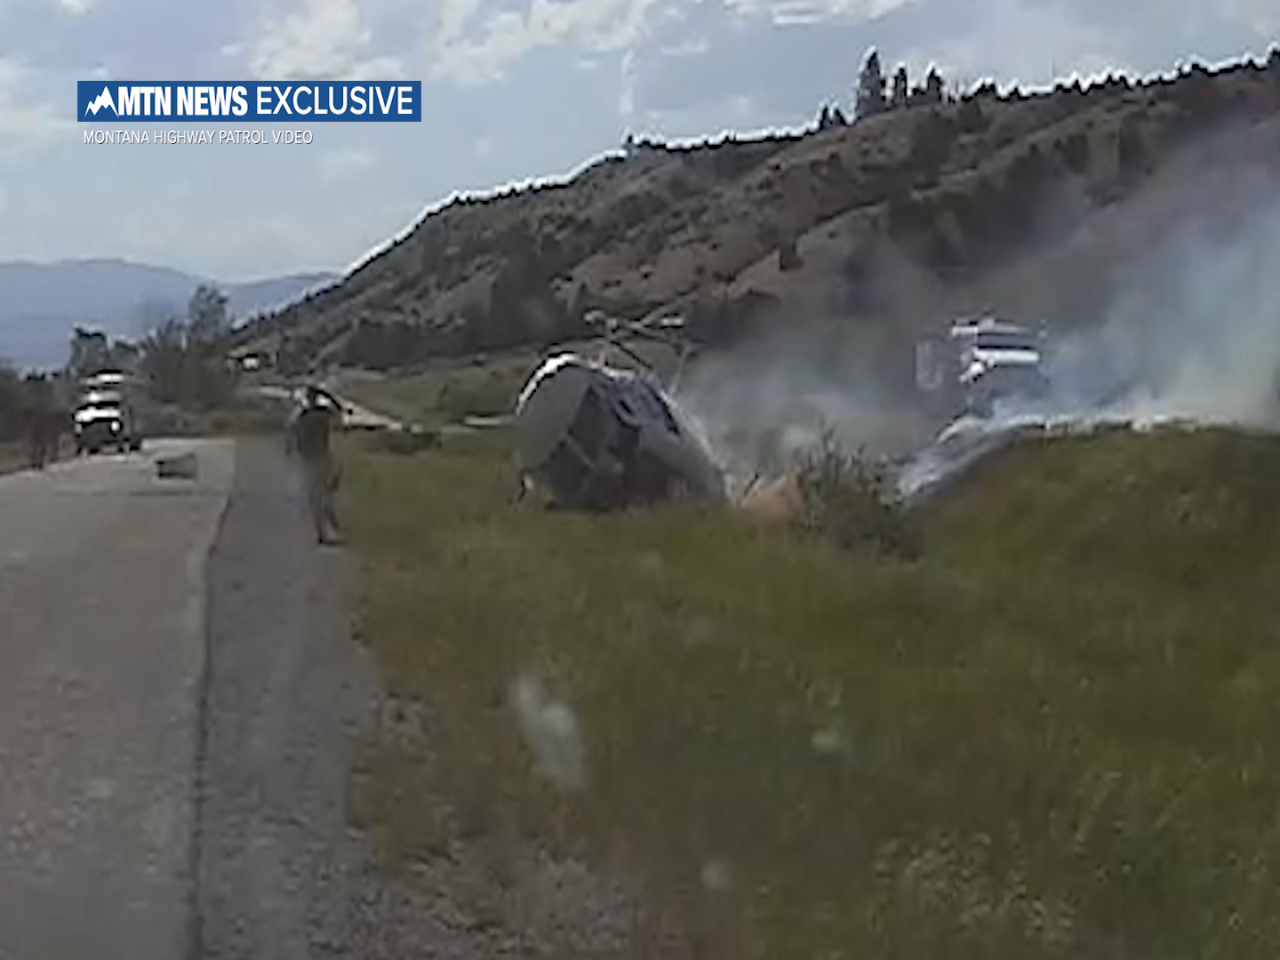 Video shows MHP trooper rescue DNRC helicopter crew